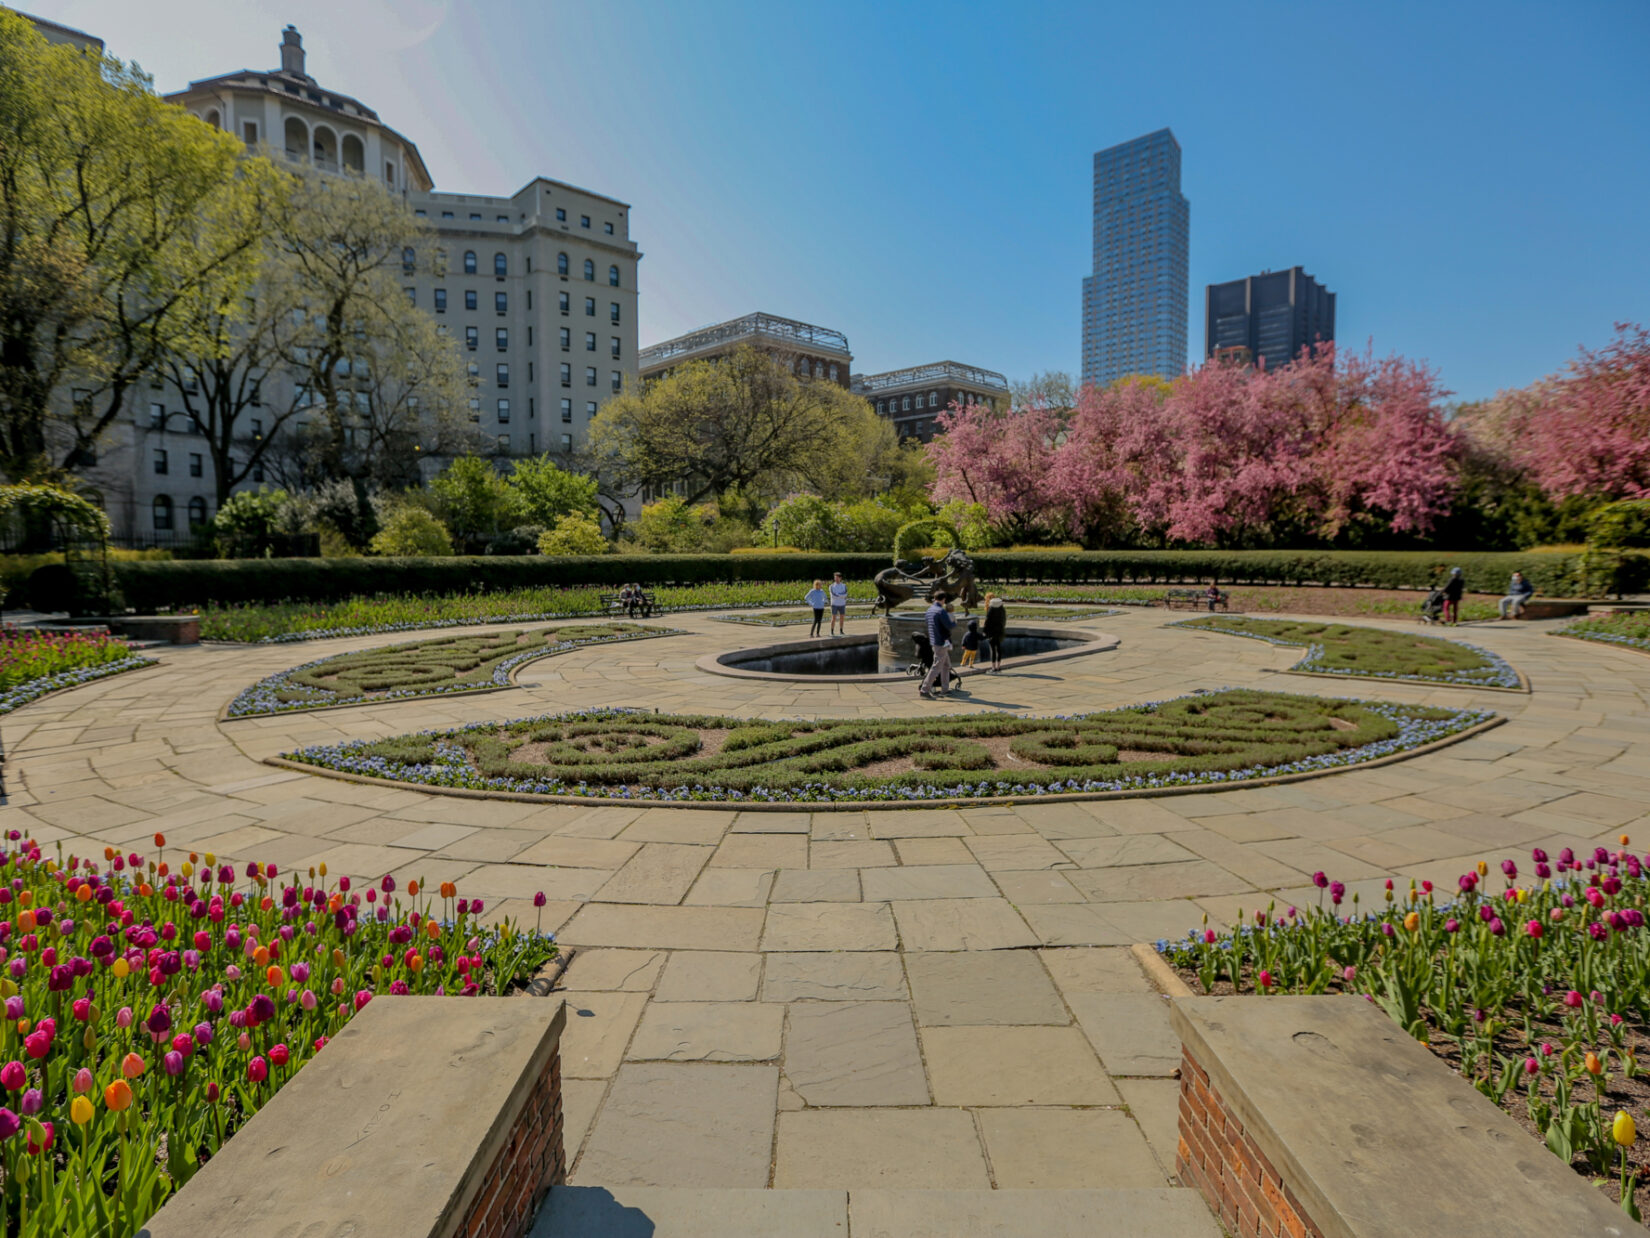 A section of Conservatory Garden pictured under a cloudless blue sky, showing the early blooms of spring.